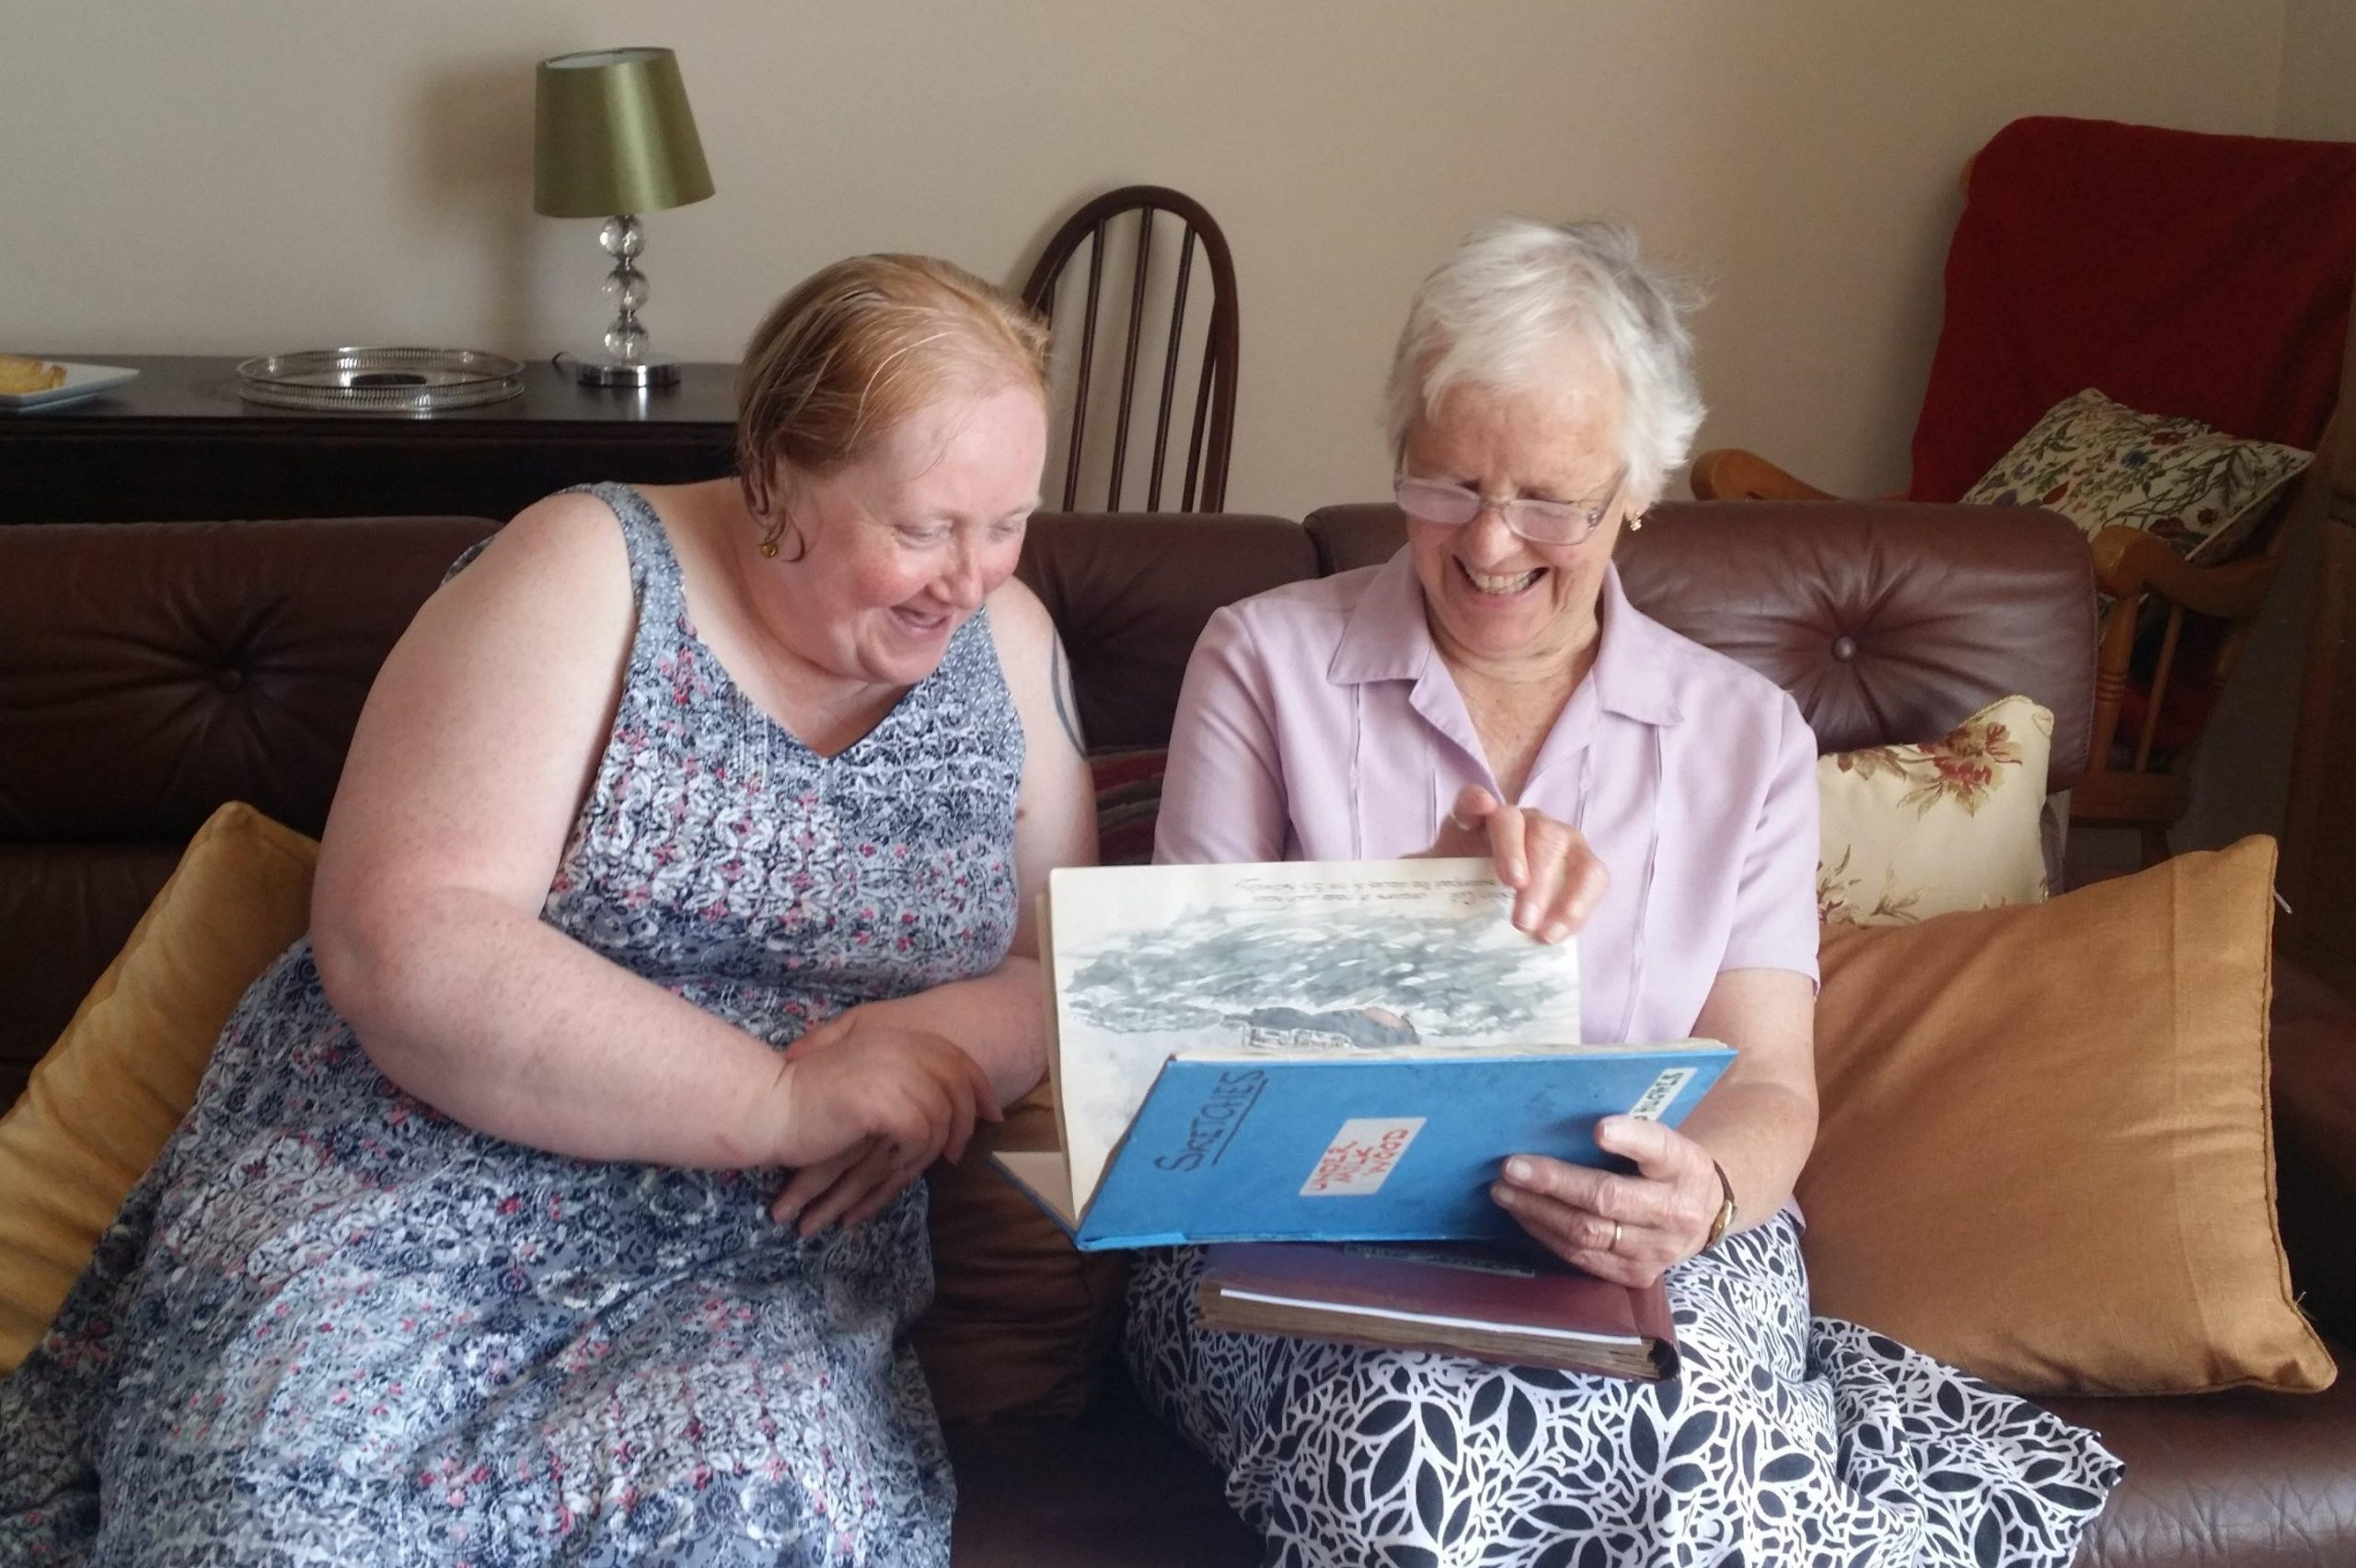 Two women sitting on a sofa look through an old sketchbook